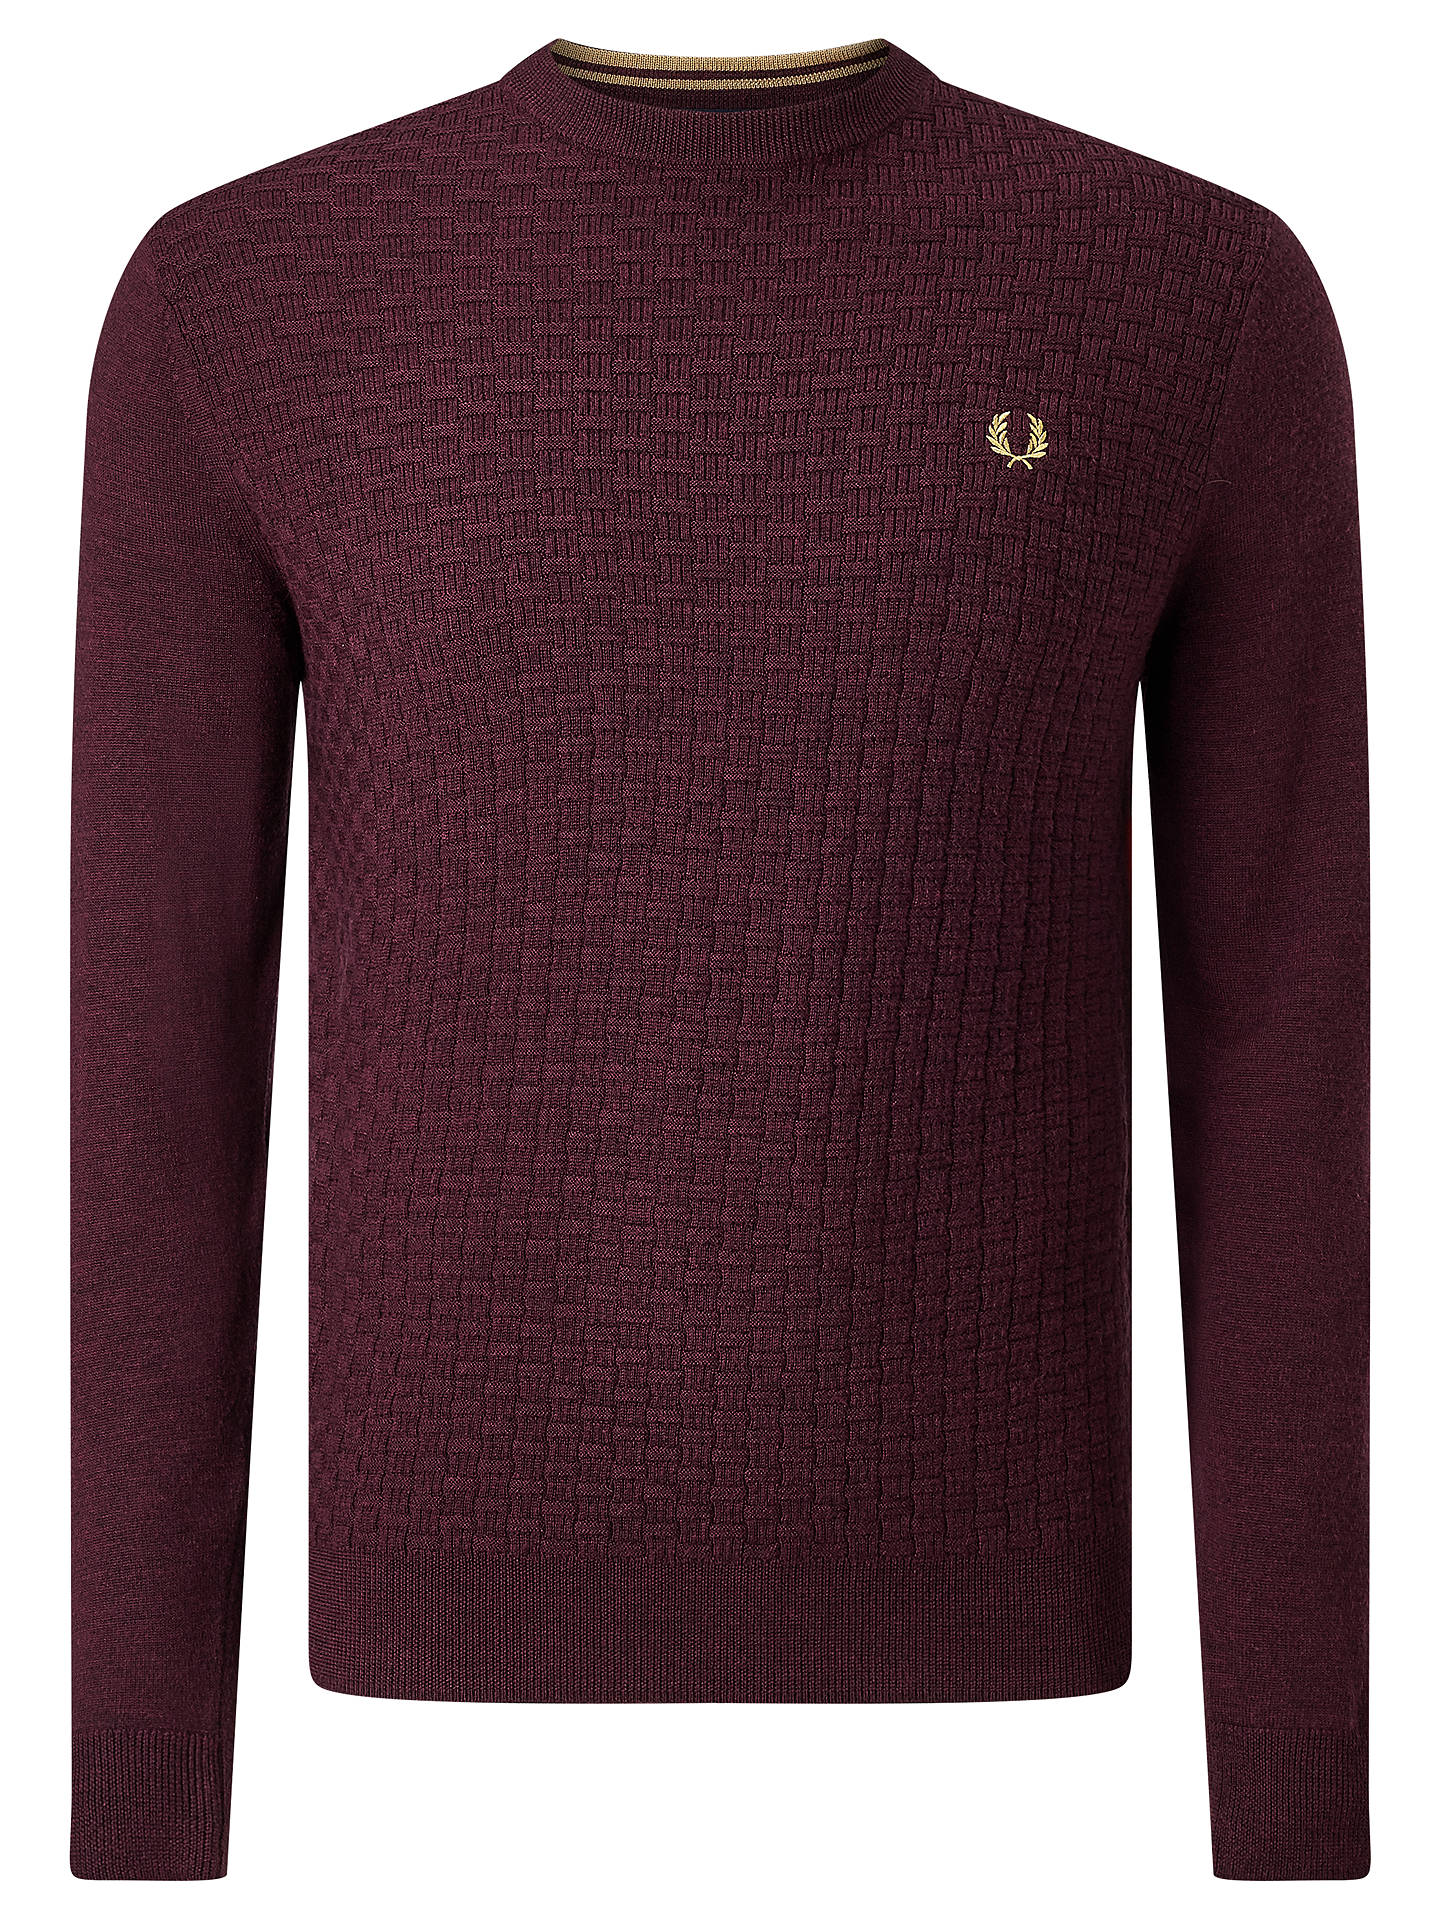 eb05808192e763 Buy Fred Perry Oxford Texture Merino Wool Crew Neck Jumper, Port Marl, M  Online